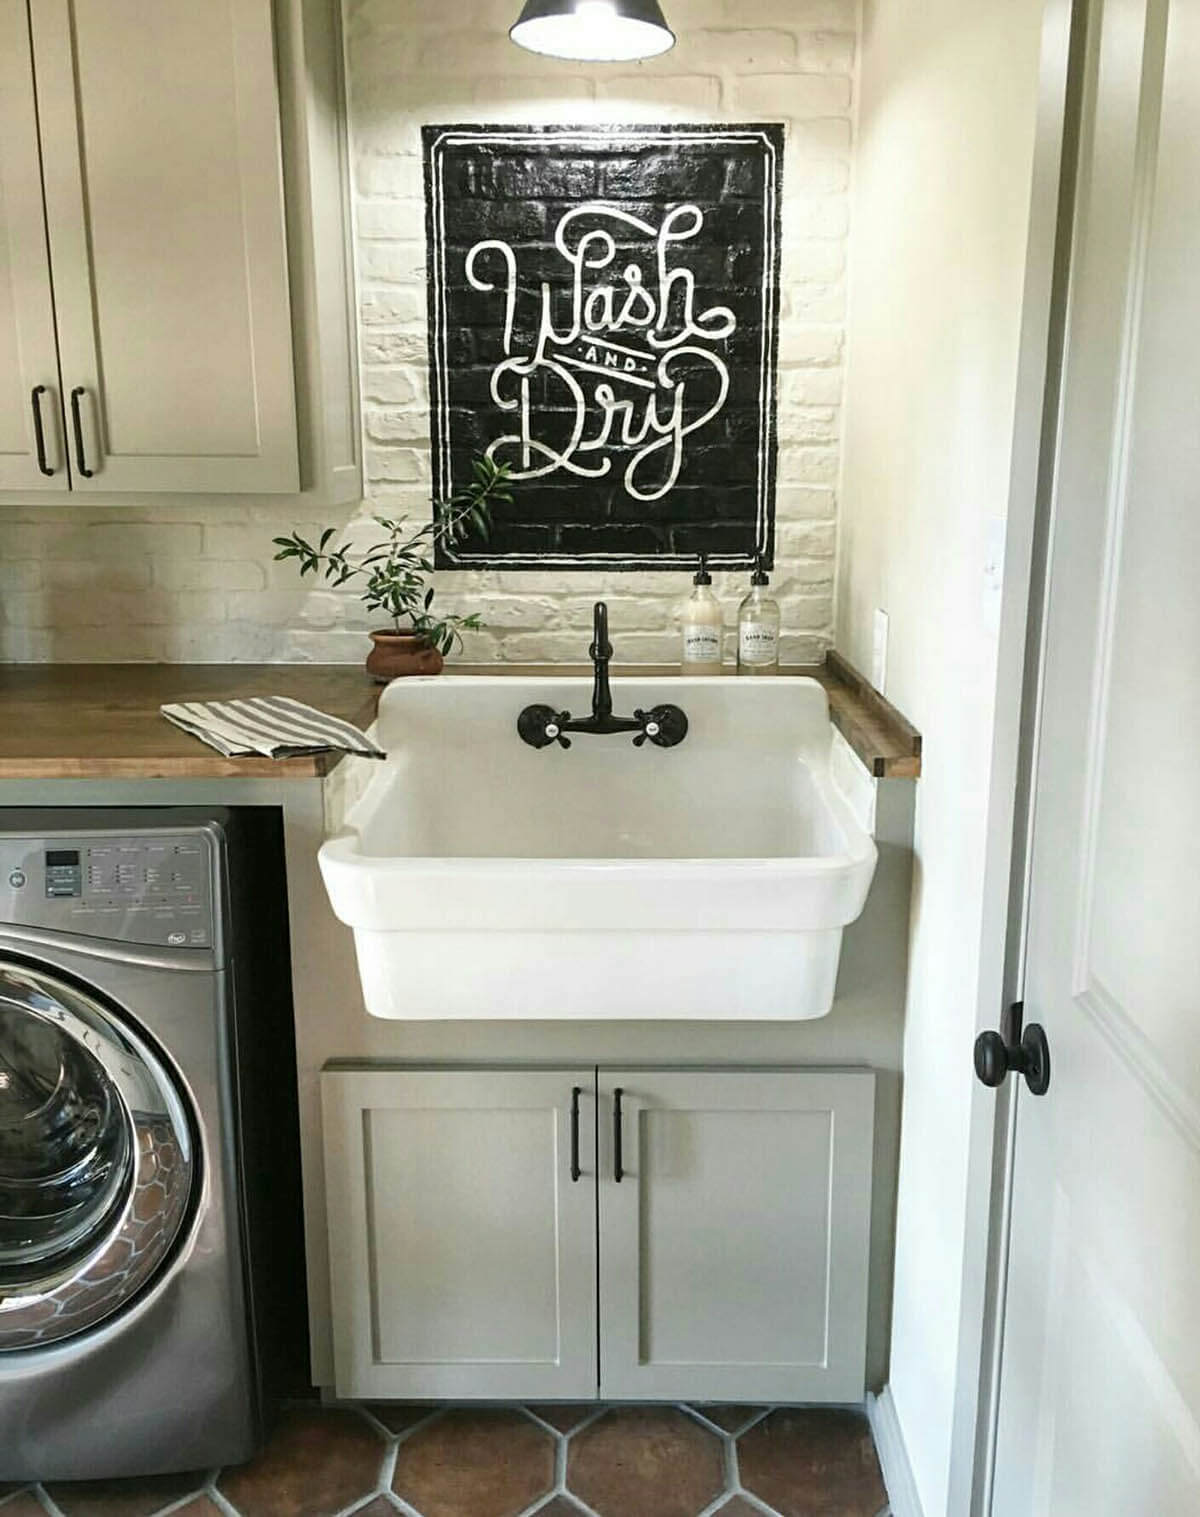 Farmhouse Sink Plus U201cWash And Dryu201d Sign